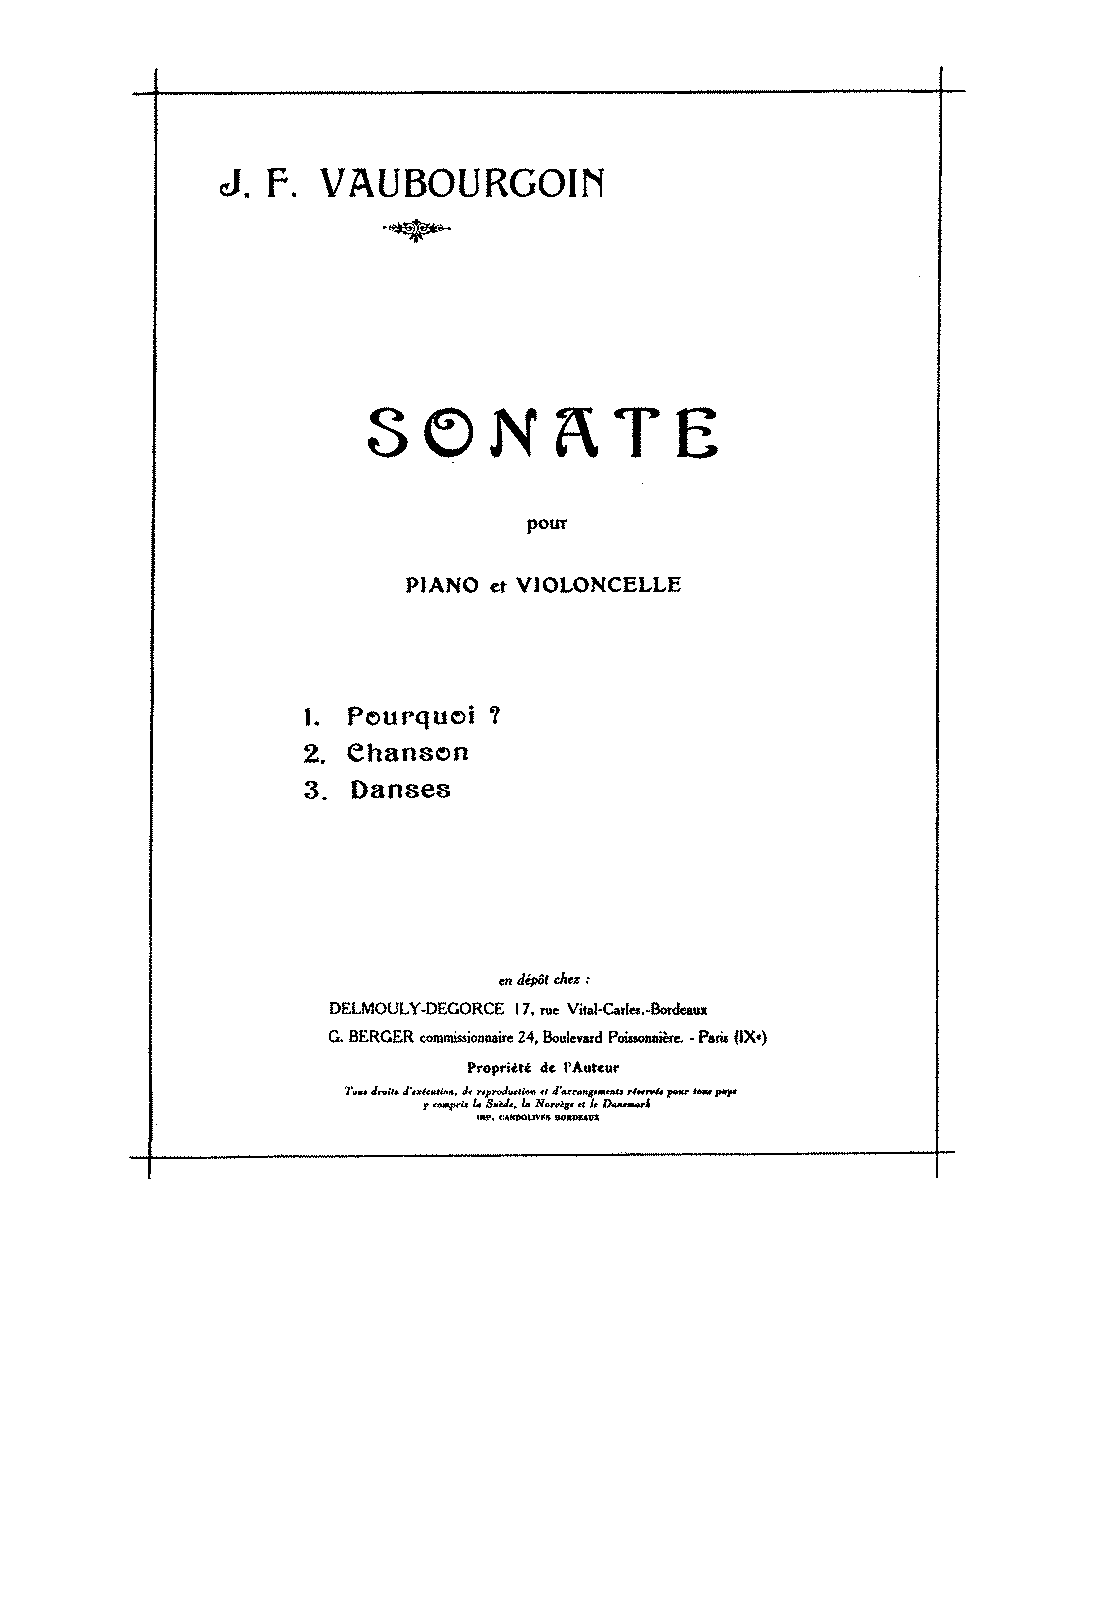 PMLP135211-Vaubourgoin - Sonata for Cello and Piano score.pdf